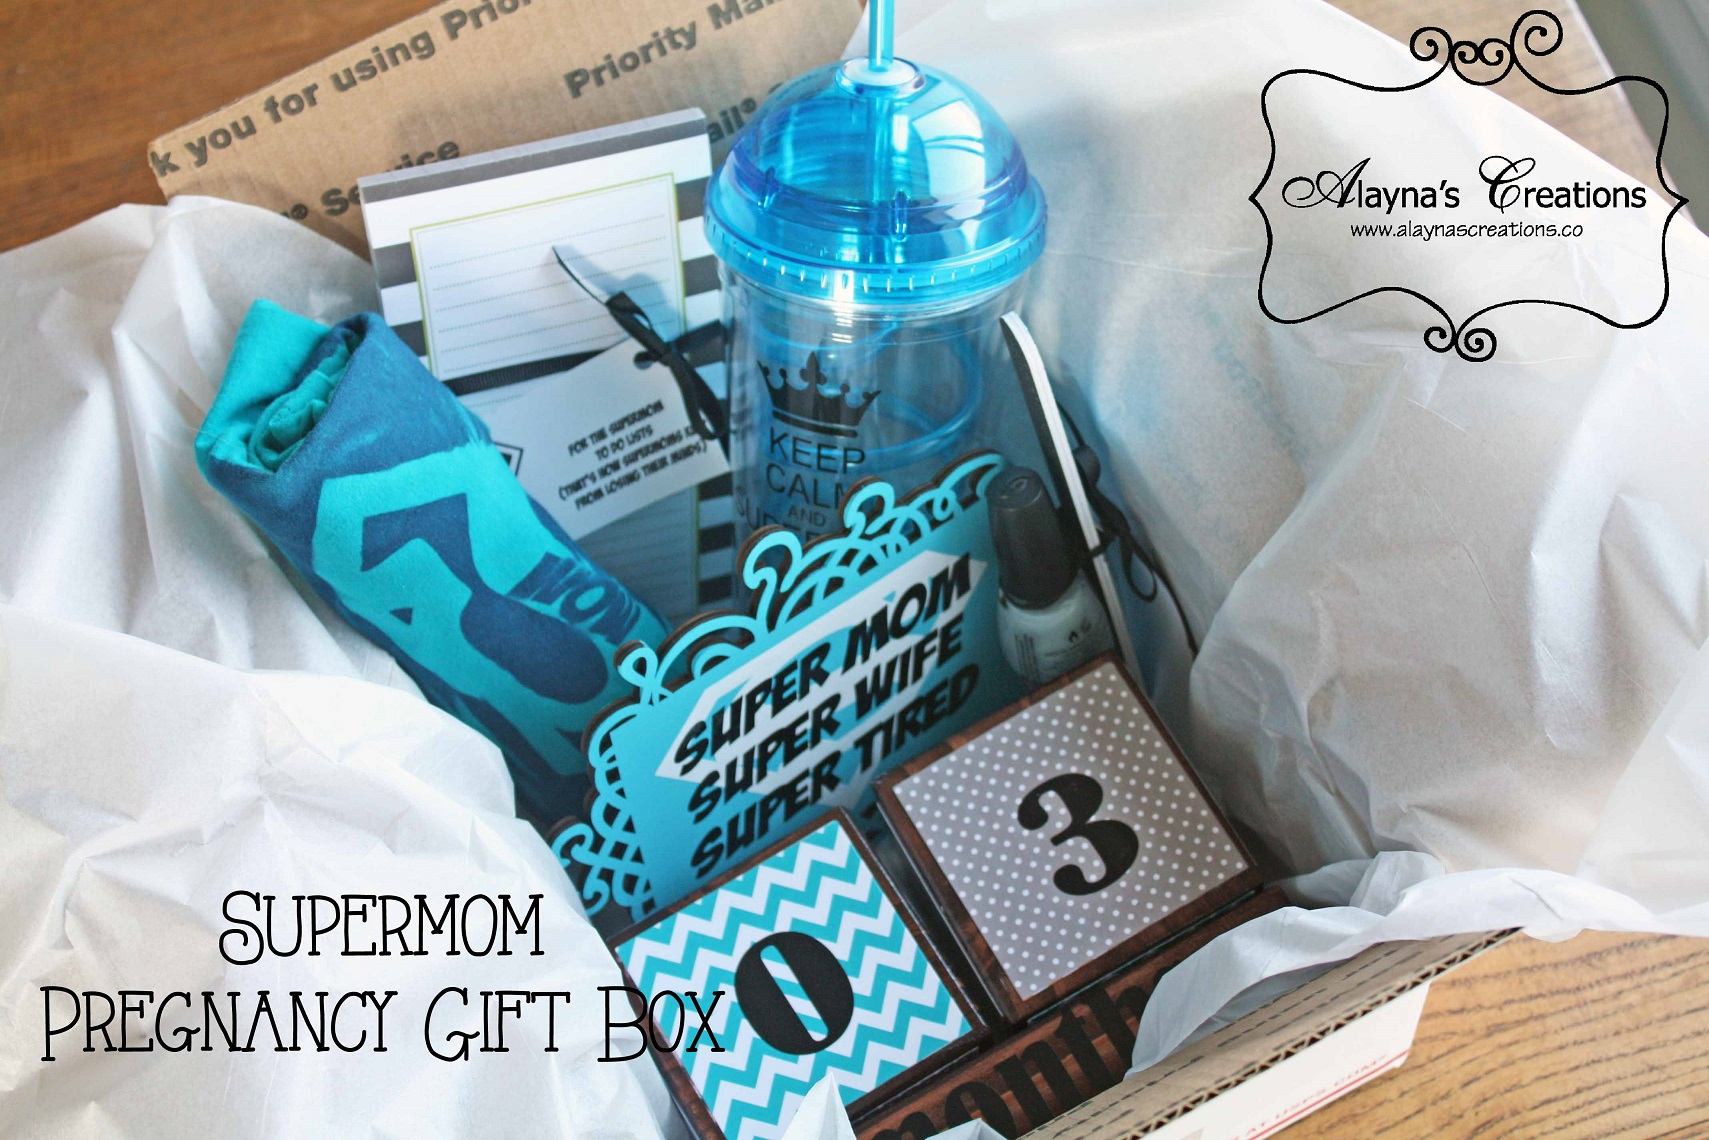 A gift for supermom diy home decor and crafts super mom gift box new baby mothers day solutioingenieria Gallery